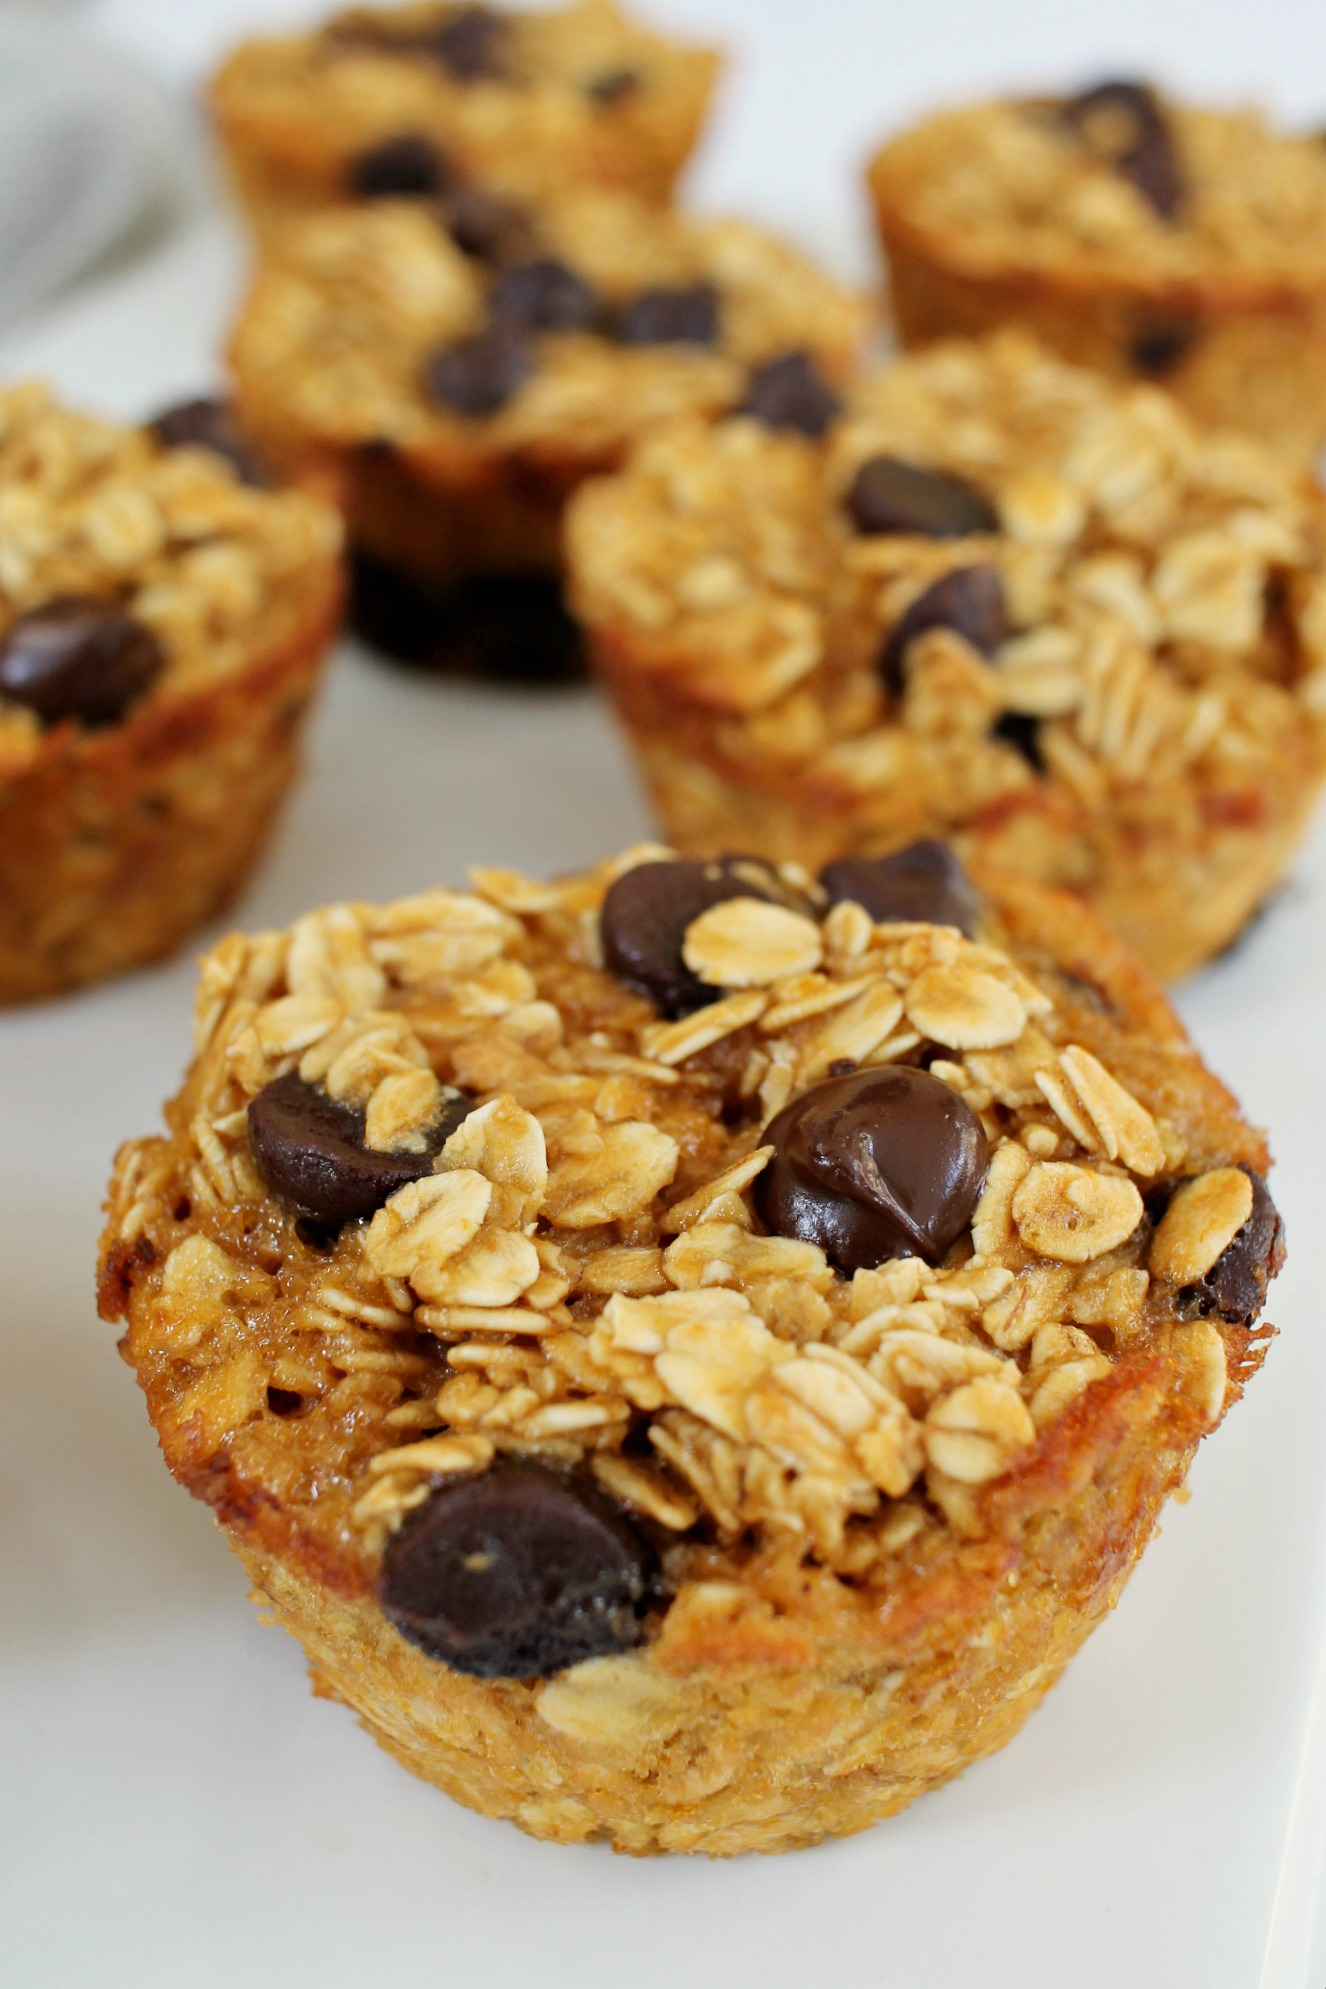 up close shot of peanut butter chocolate chip baked oatmeal muffin with more in the background